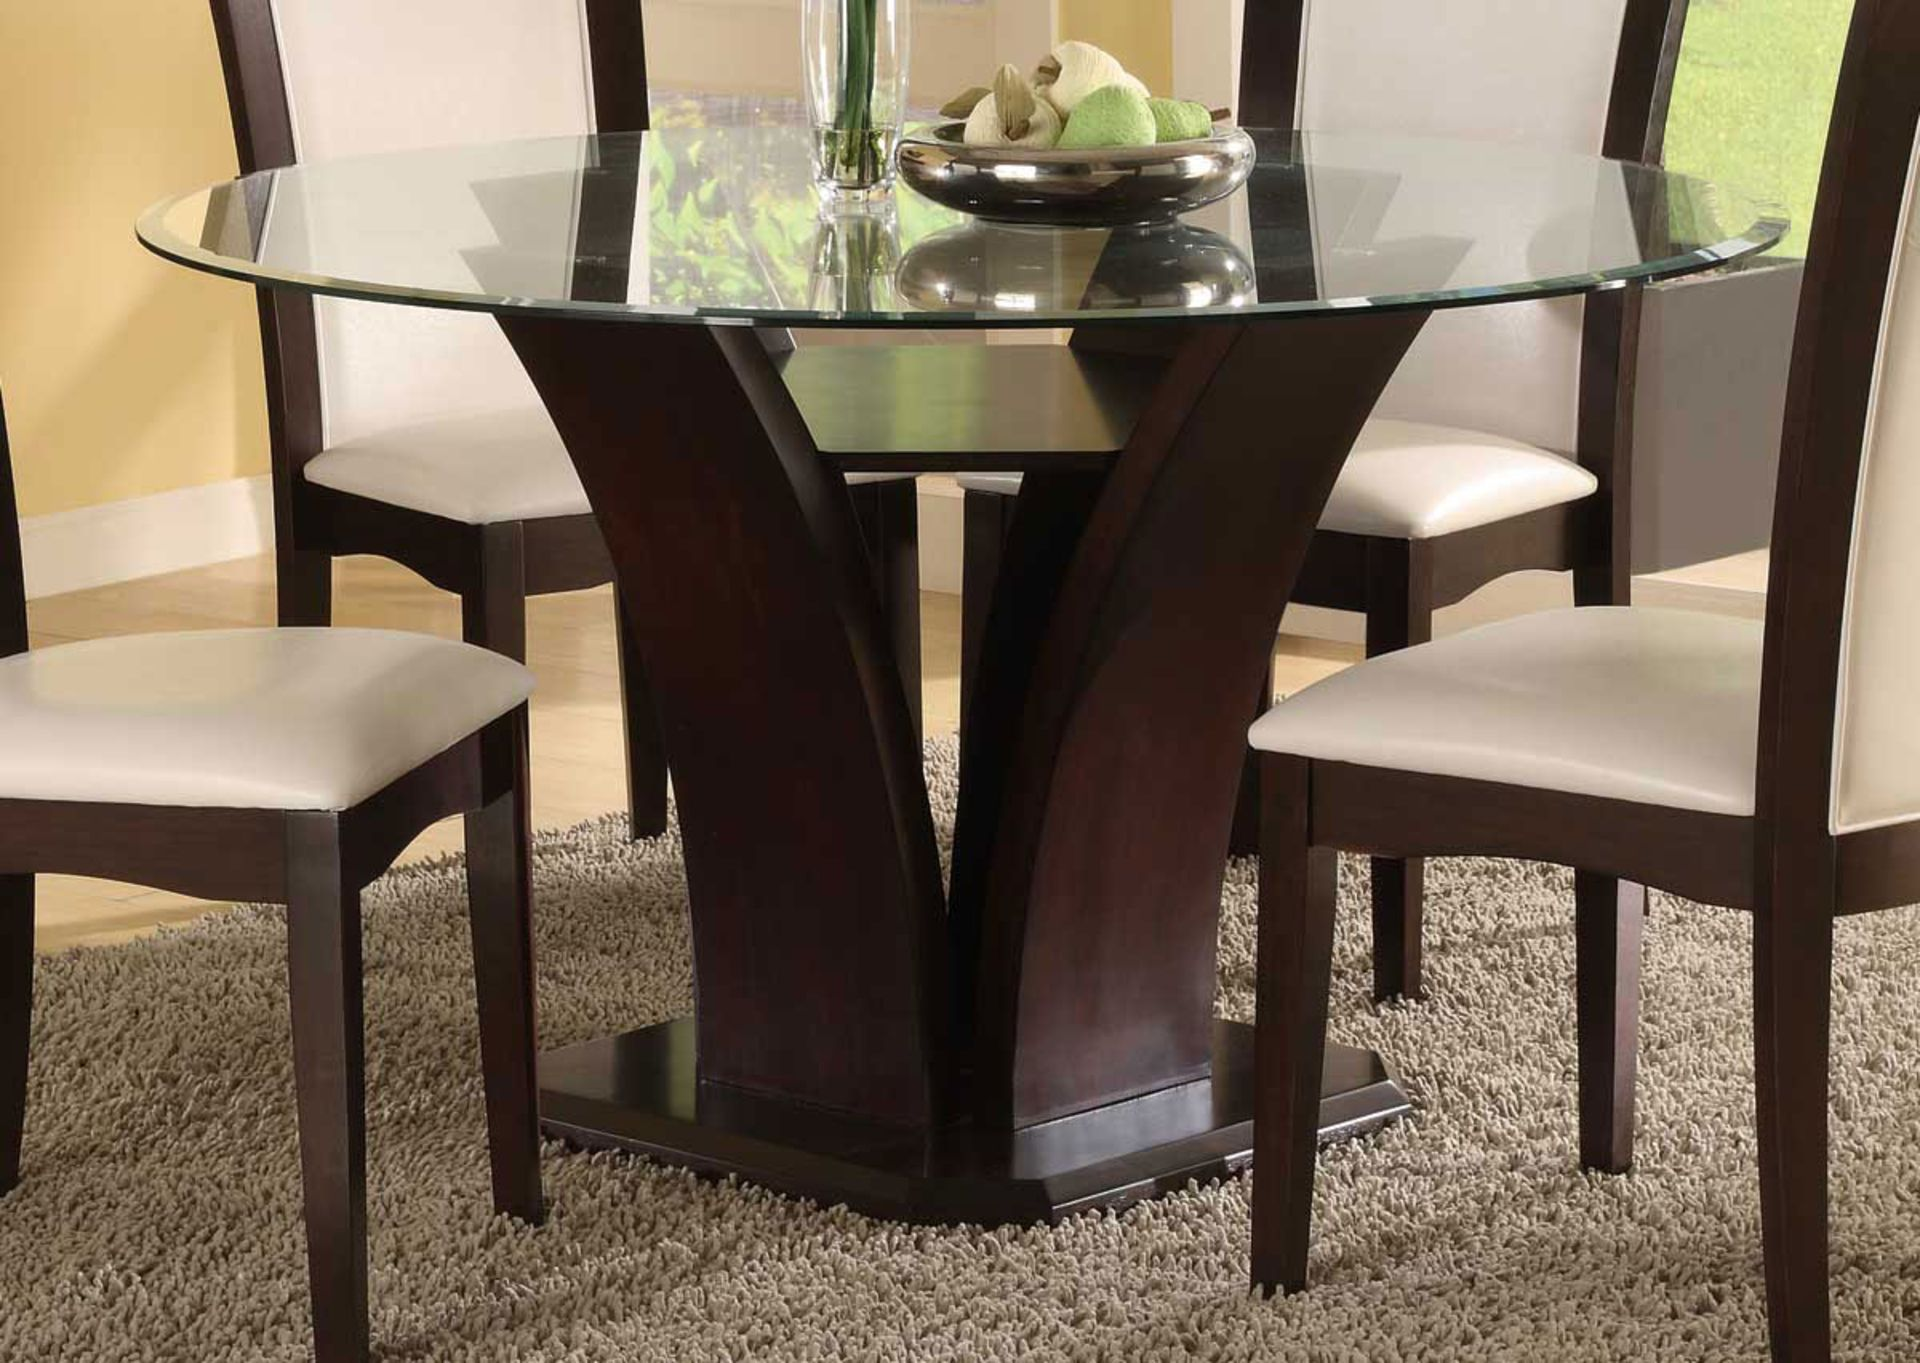 Designs Bianca Glass Top Dining Table Legged Inspiring Ideas Dining Table  With Glass Top And Metal